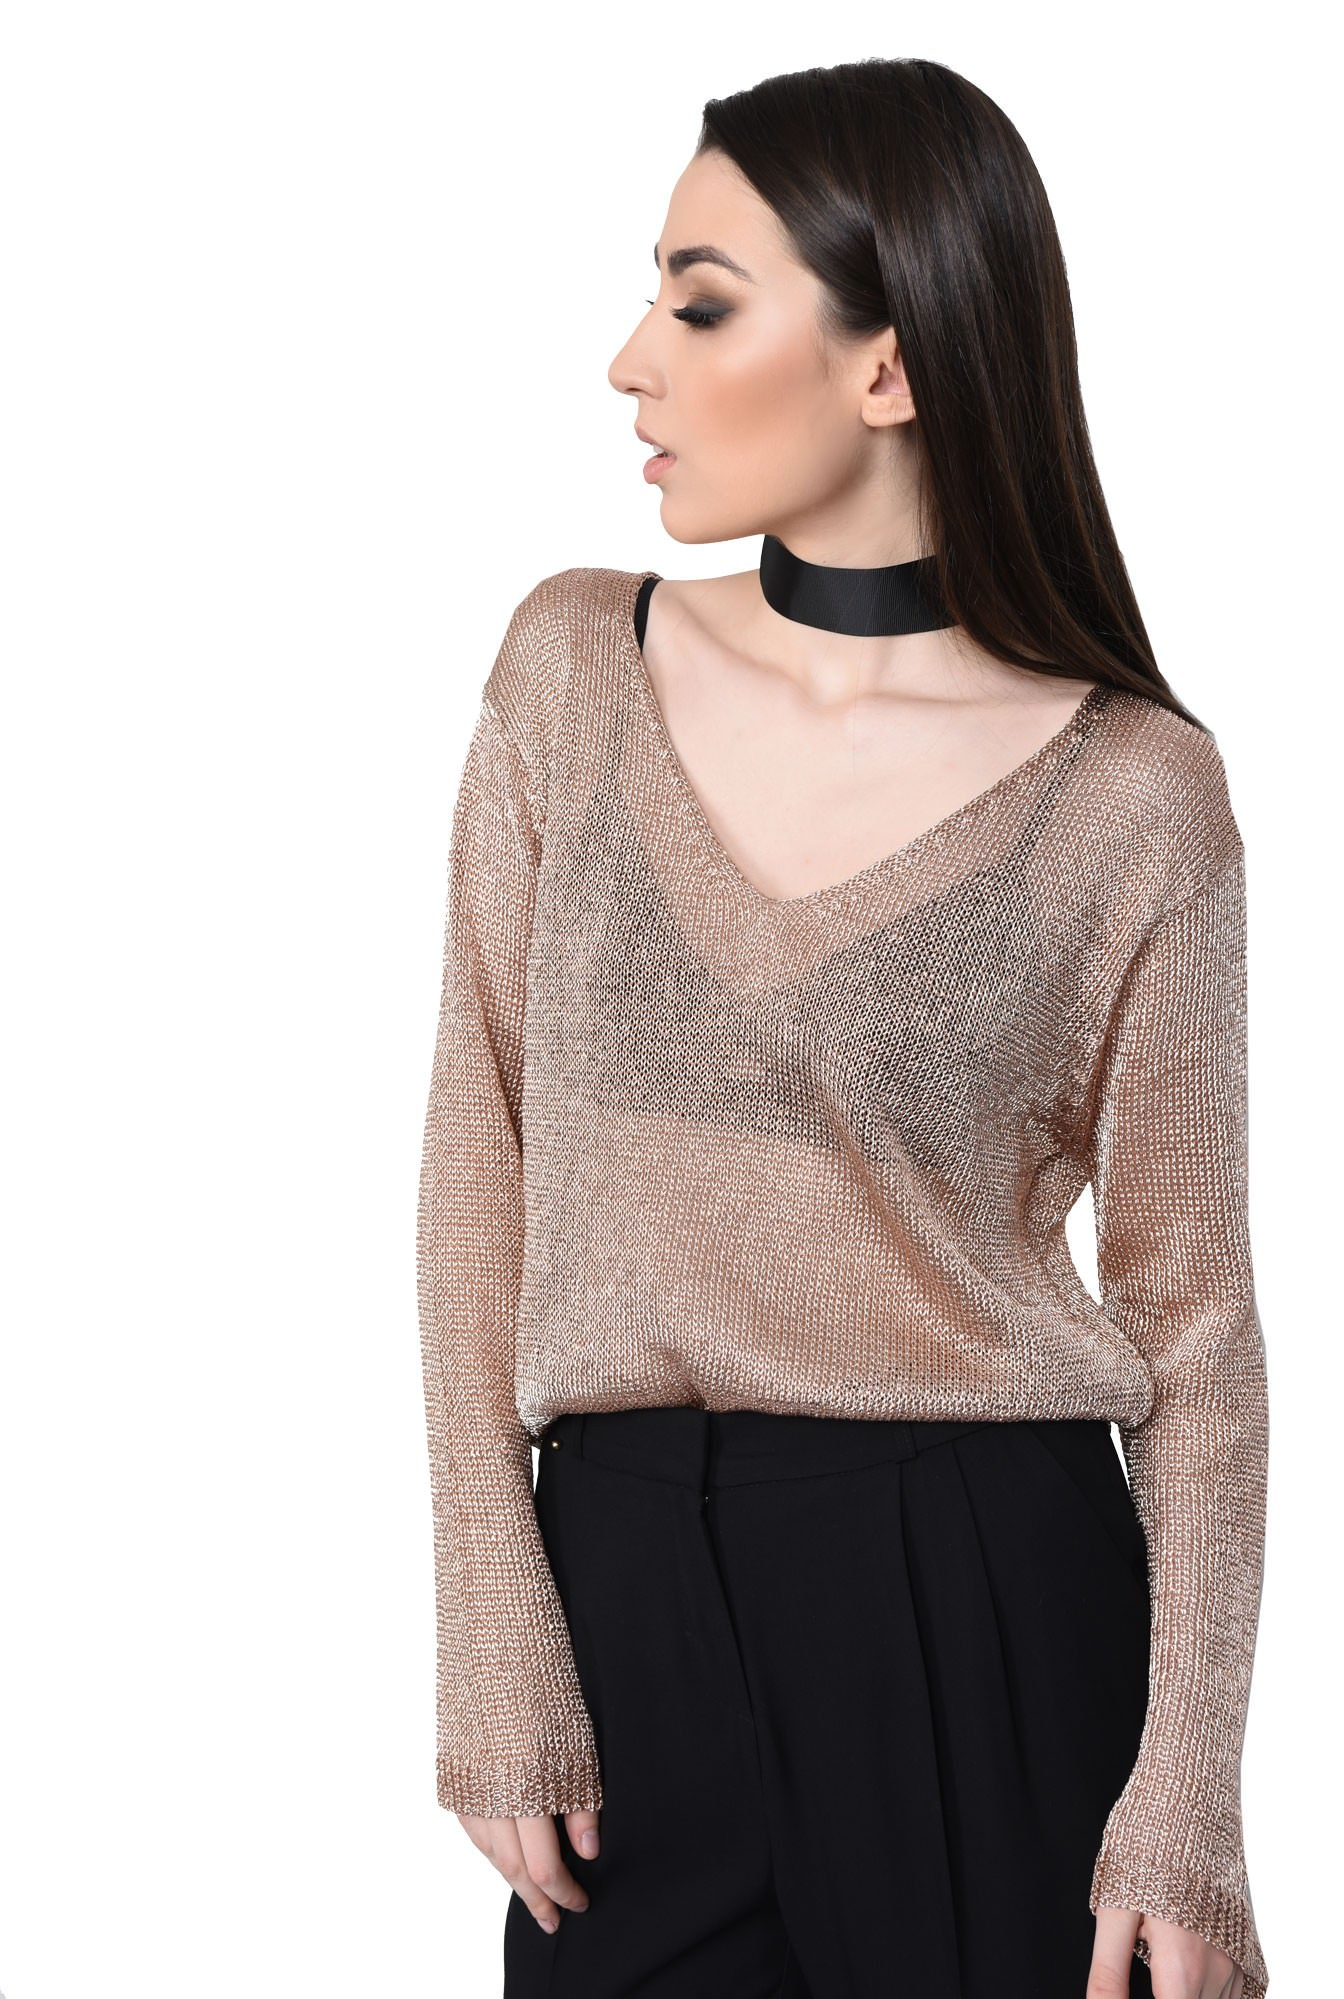 2 - PULOVER CASUAL PL15021707-ROZ